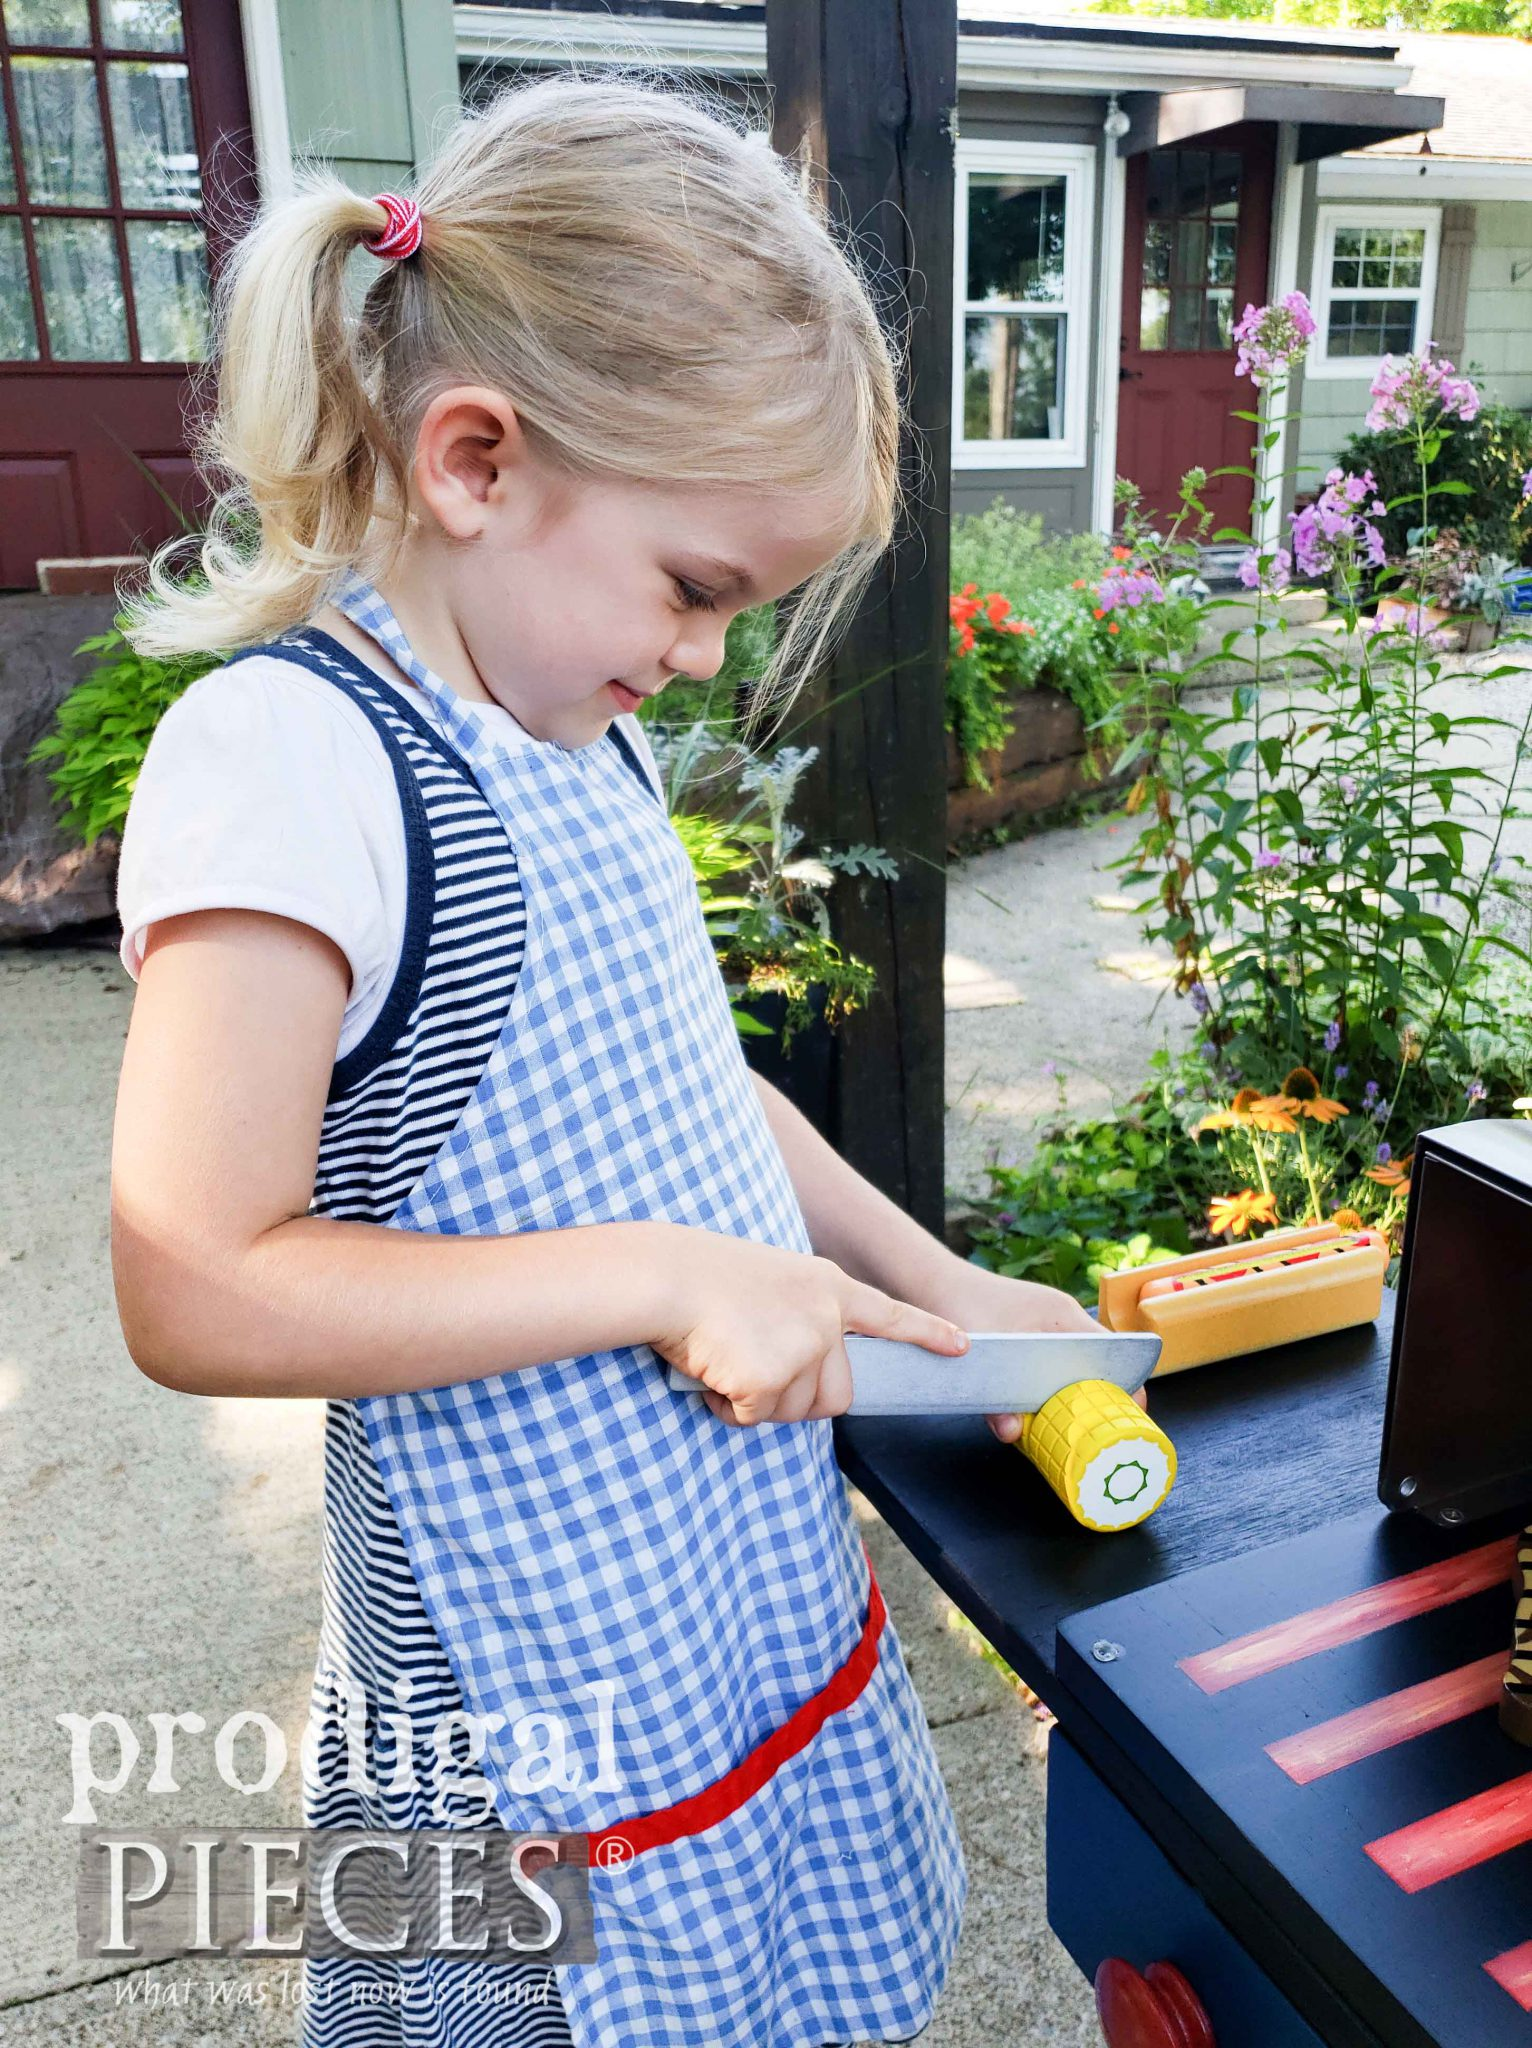 Pretend Play Grill with Food Set Created by Larissa of Prodigal Pieces | prodigalpieces.com #prodigalpieces #handmade #toys #kids #fun